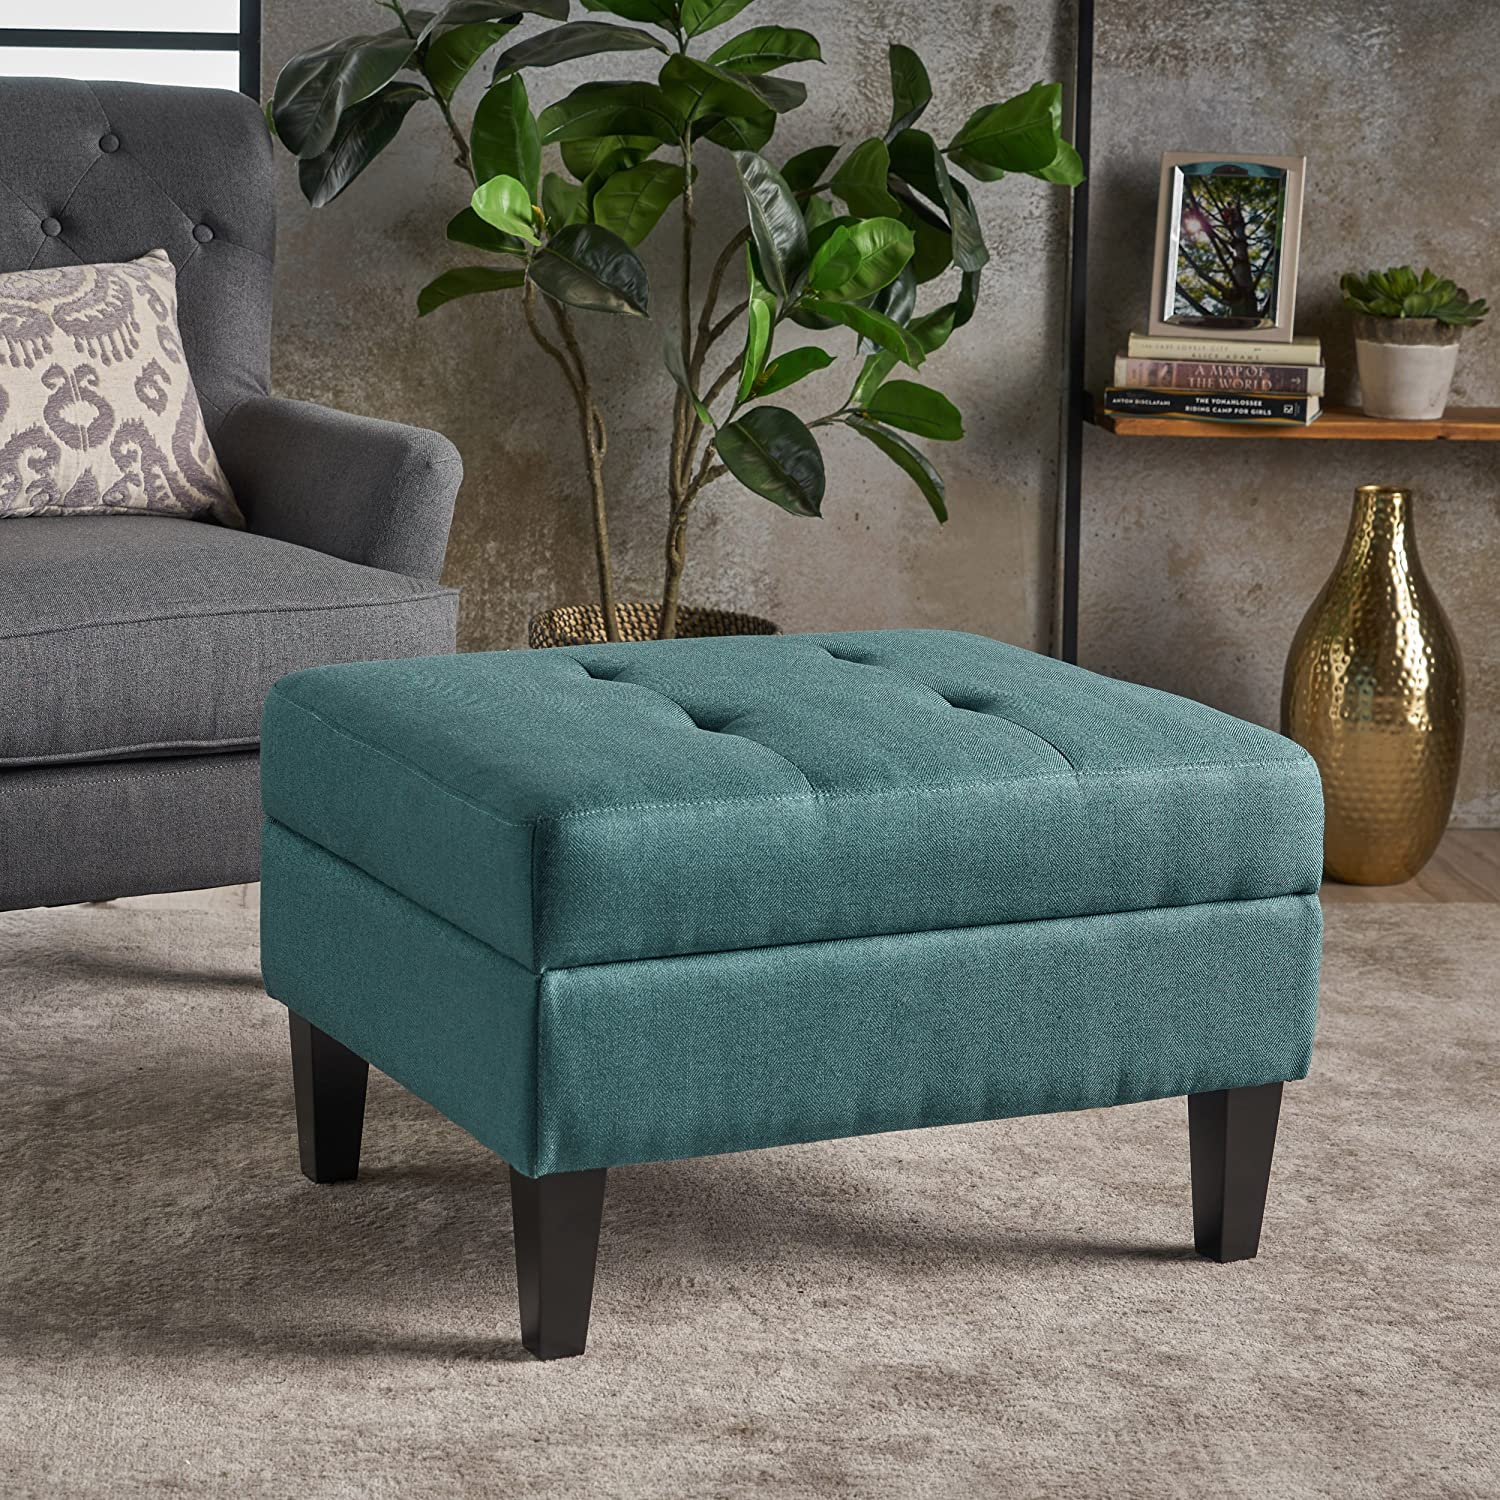 Christopher Knight Home 301490 Bridger Teal Fabric Storage Ottoman,